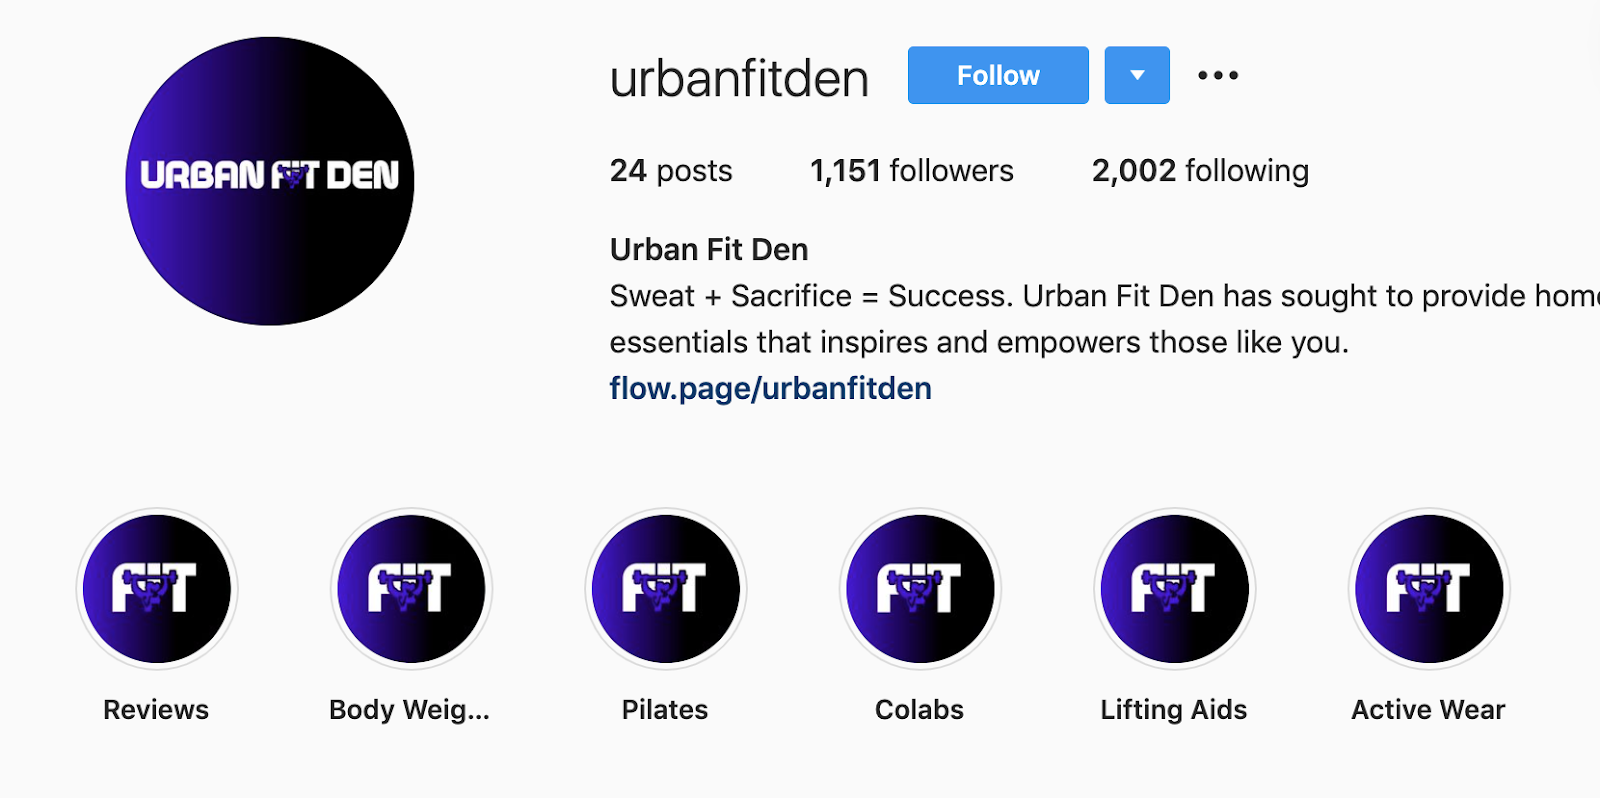 Urban Fit Den | Brands Looking for Female Influencers to Promote Fitness Products